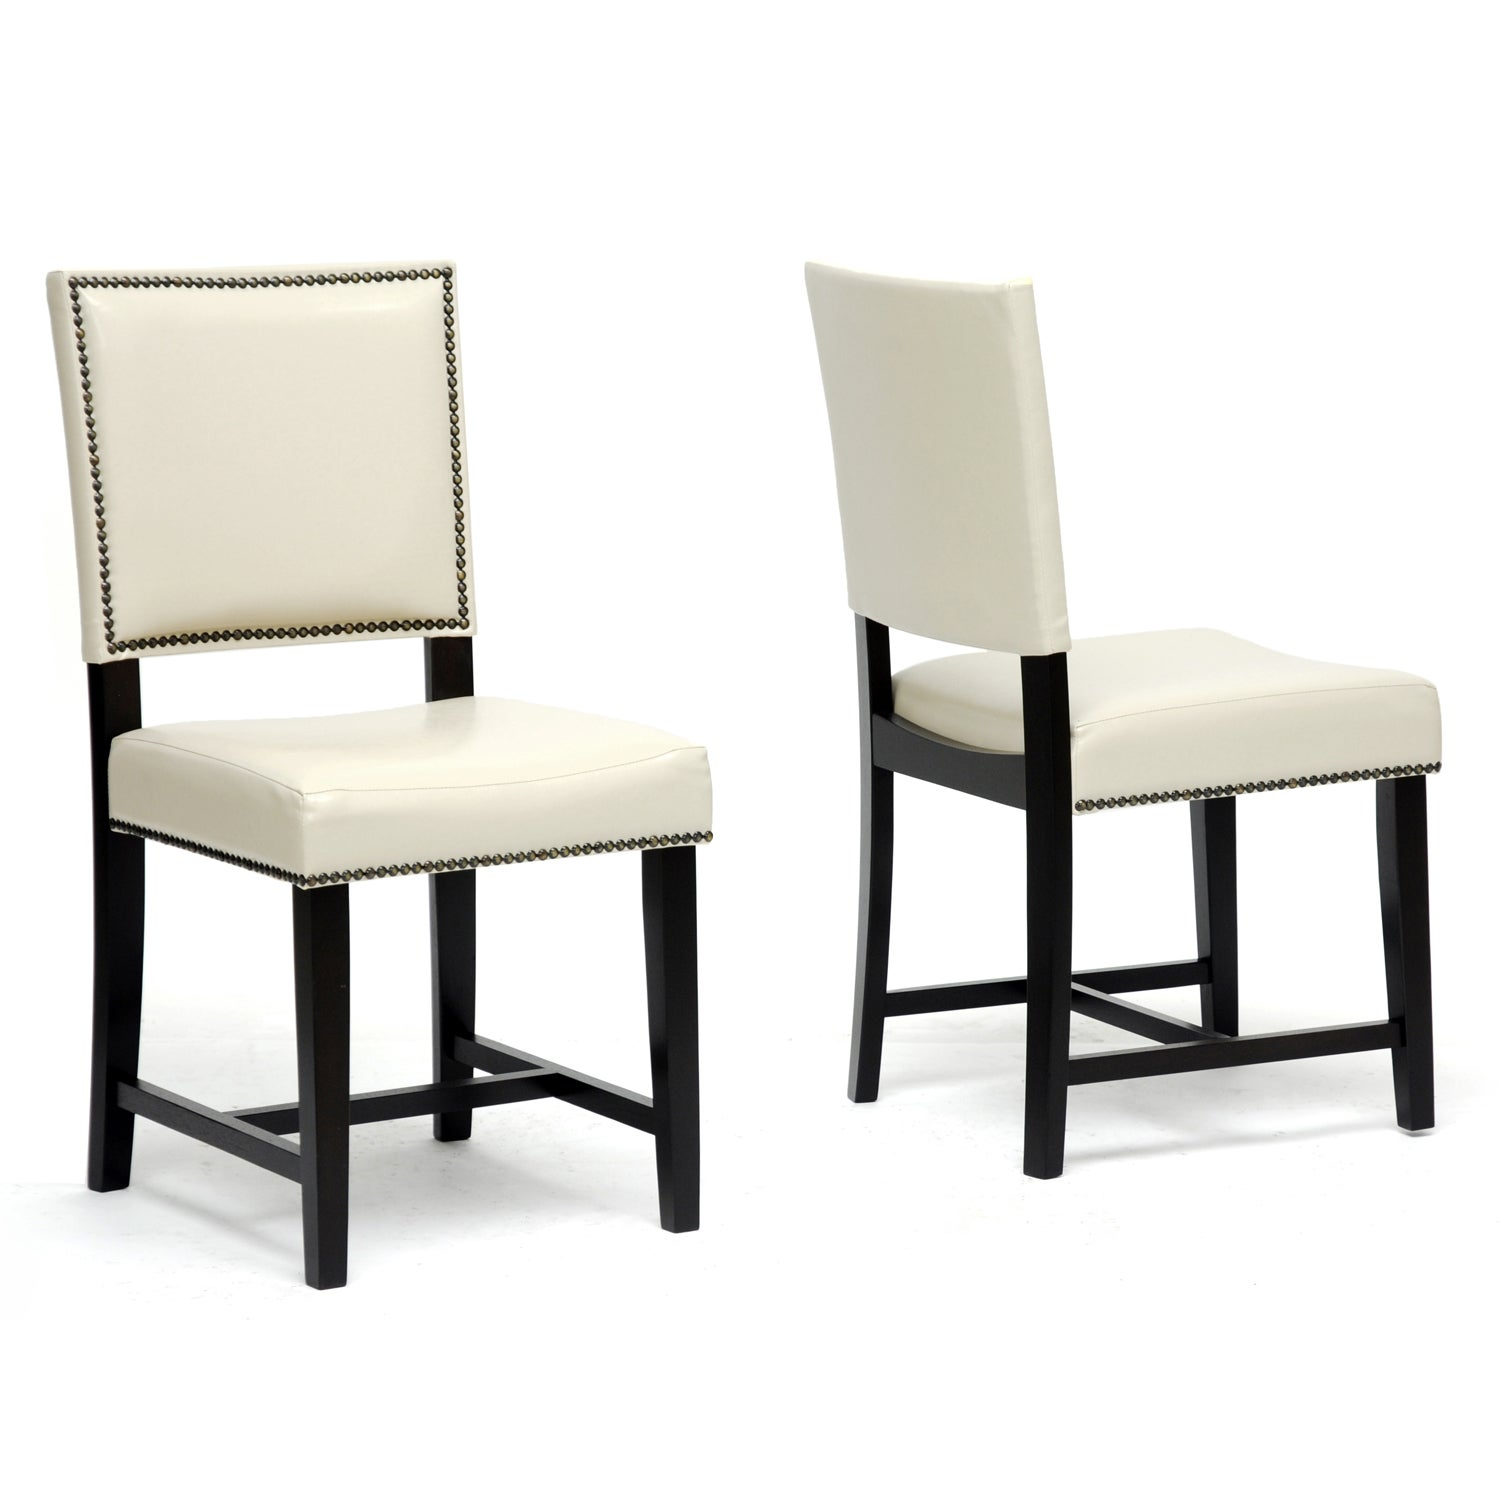 Baxton studio dining chairs overstock shopping the best prices online Cream wooden furniture